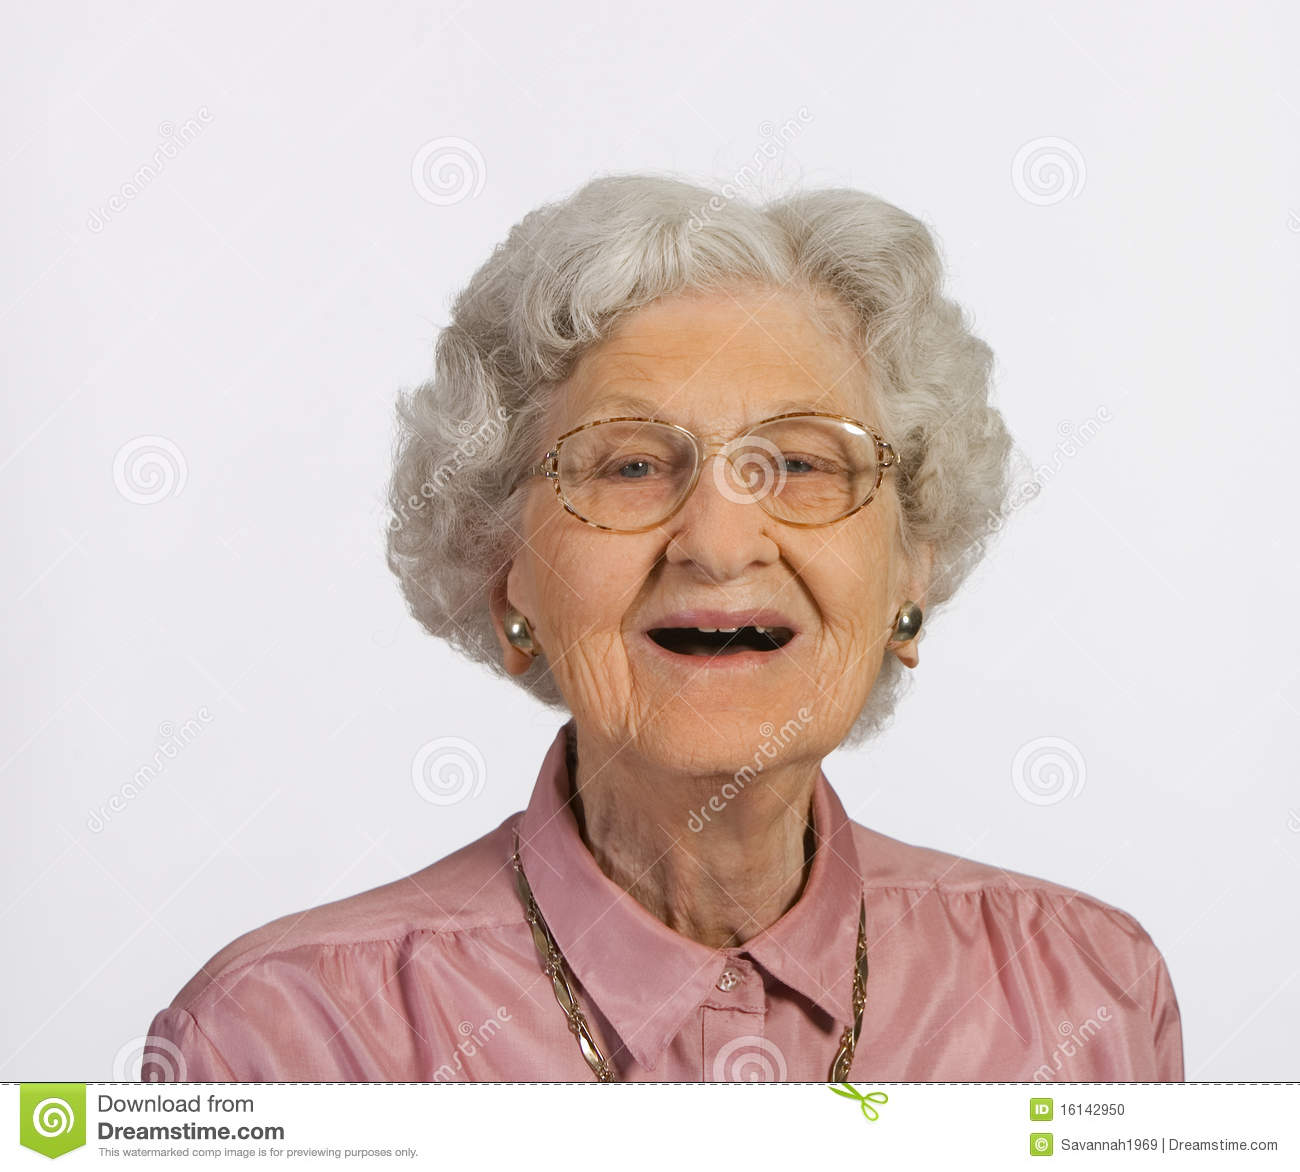 4c4fd50e9b Old woman with glasses and gray hair happy and smiling